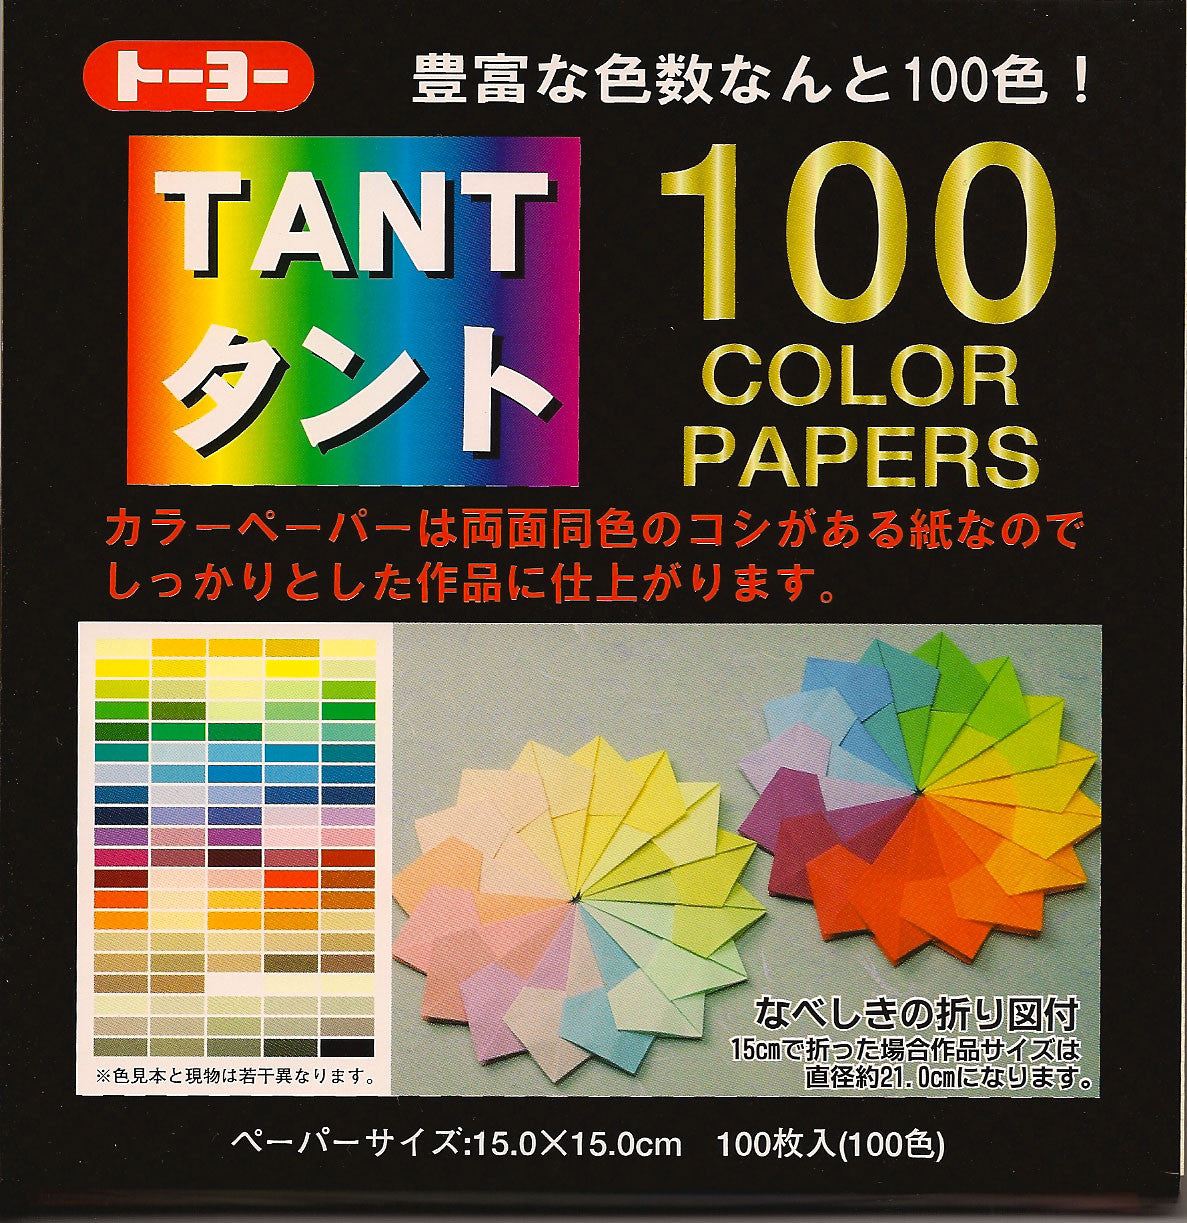 Tant origami paper 100 colors paper tree the origami store tant 100 colors origami paper jeuxipadfo Images